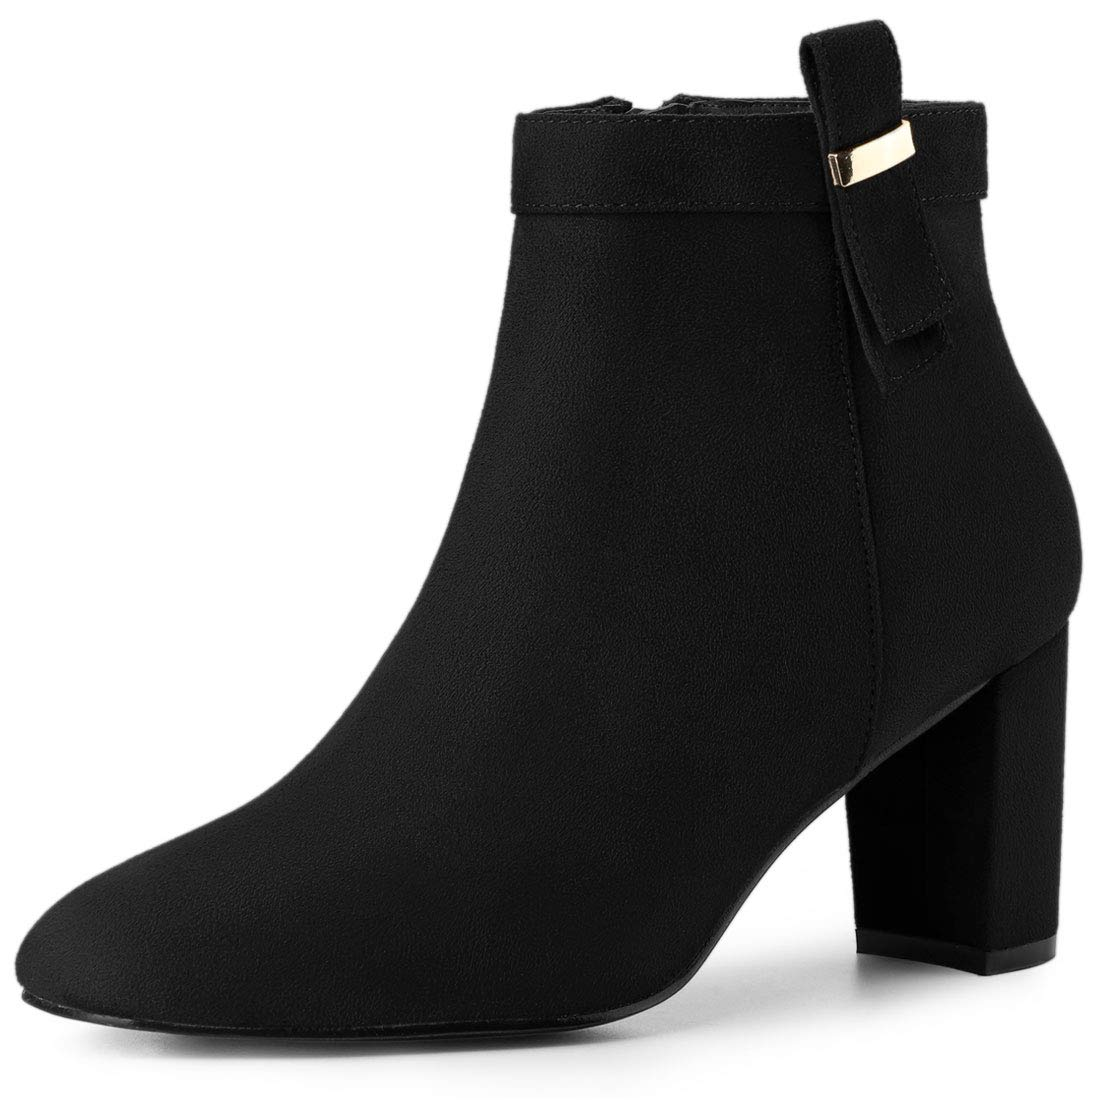 Allegra K Women's Round Toe Chunky High Heel Ankle Boots